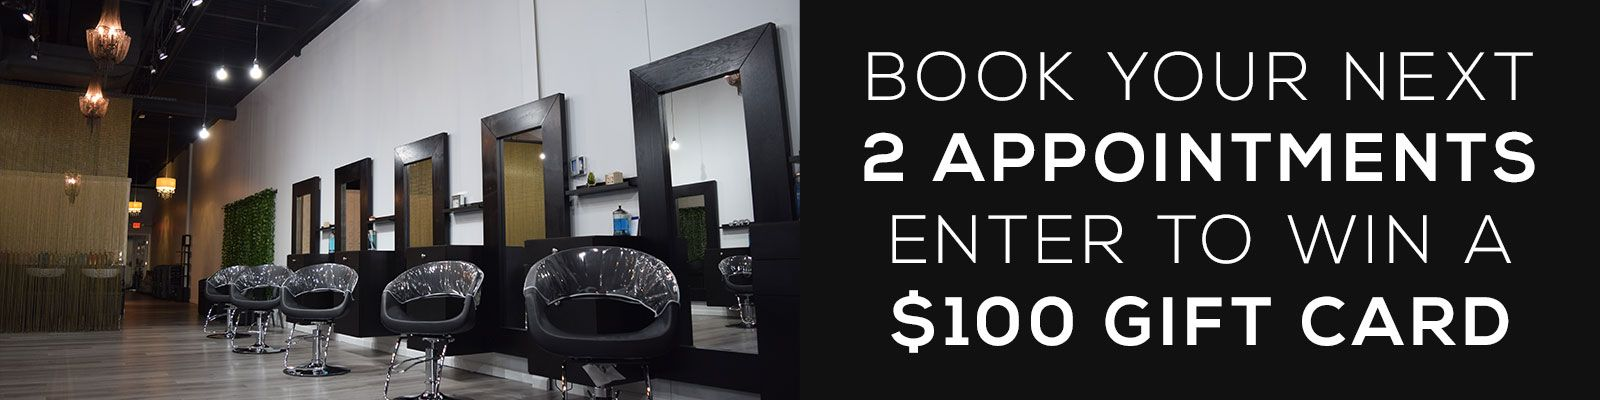 Book Next 2 Appointments to Win